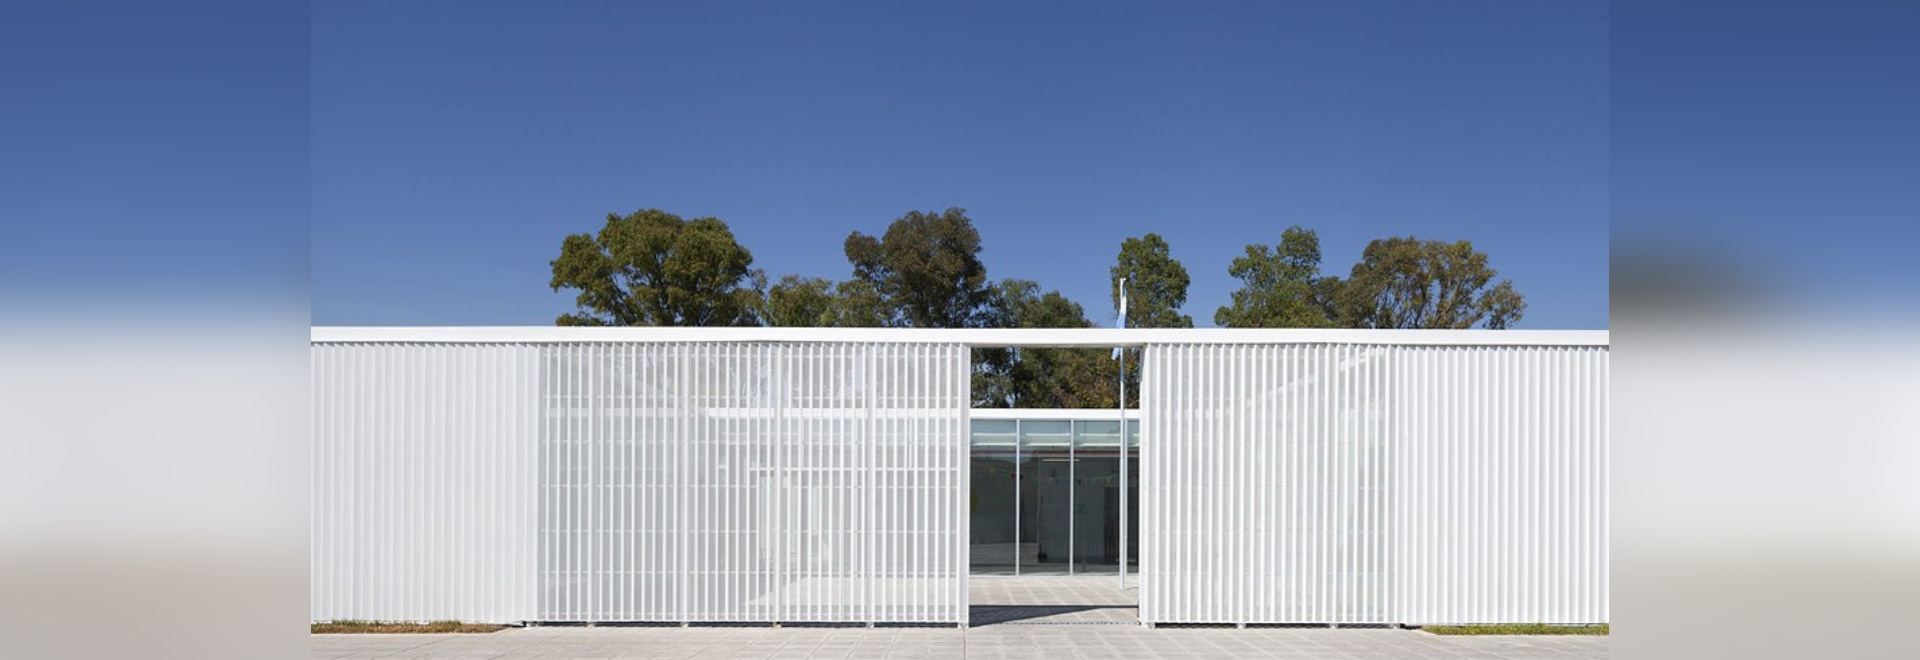 Modularity and economy meet in Buenos Aires child development centre